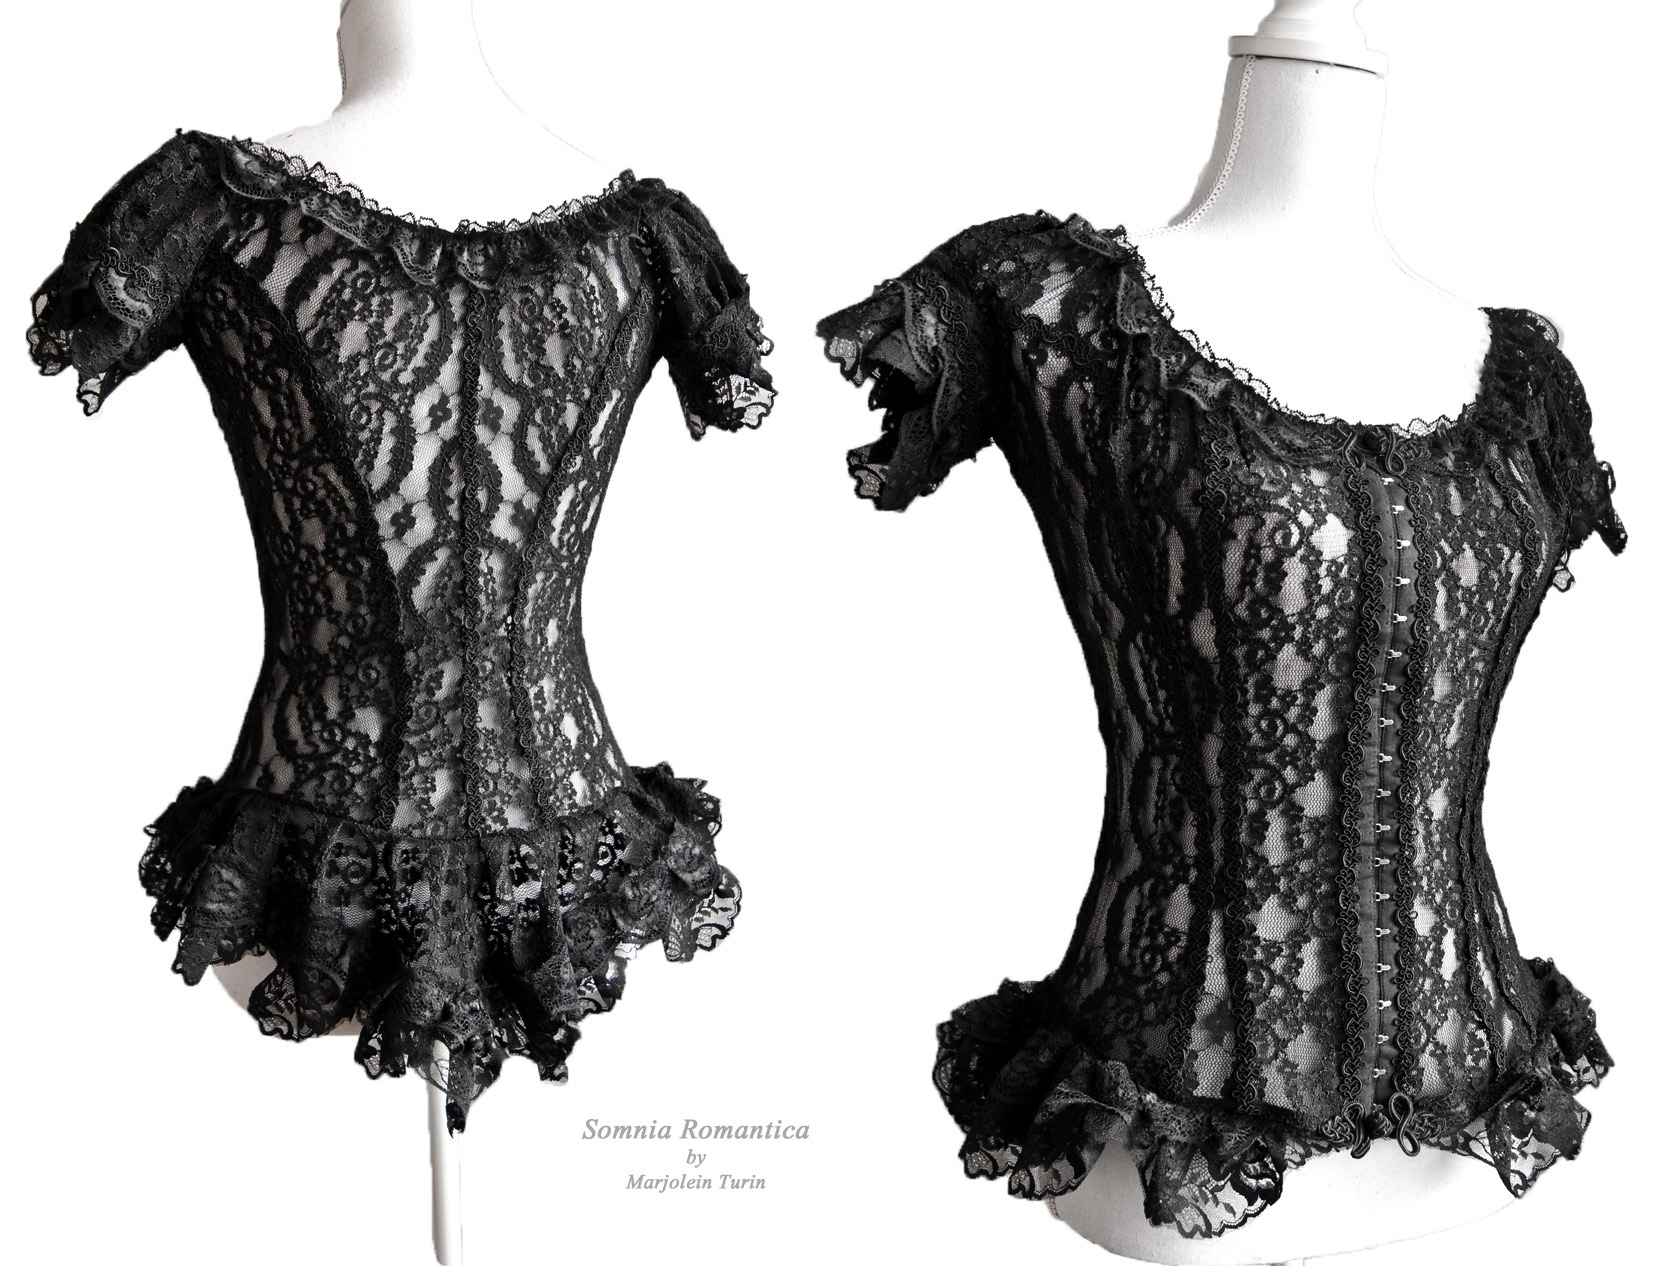 Frances blouse,Somnia Romantica by Marjolein Turin by SomniaRomantica